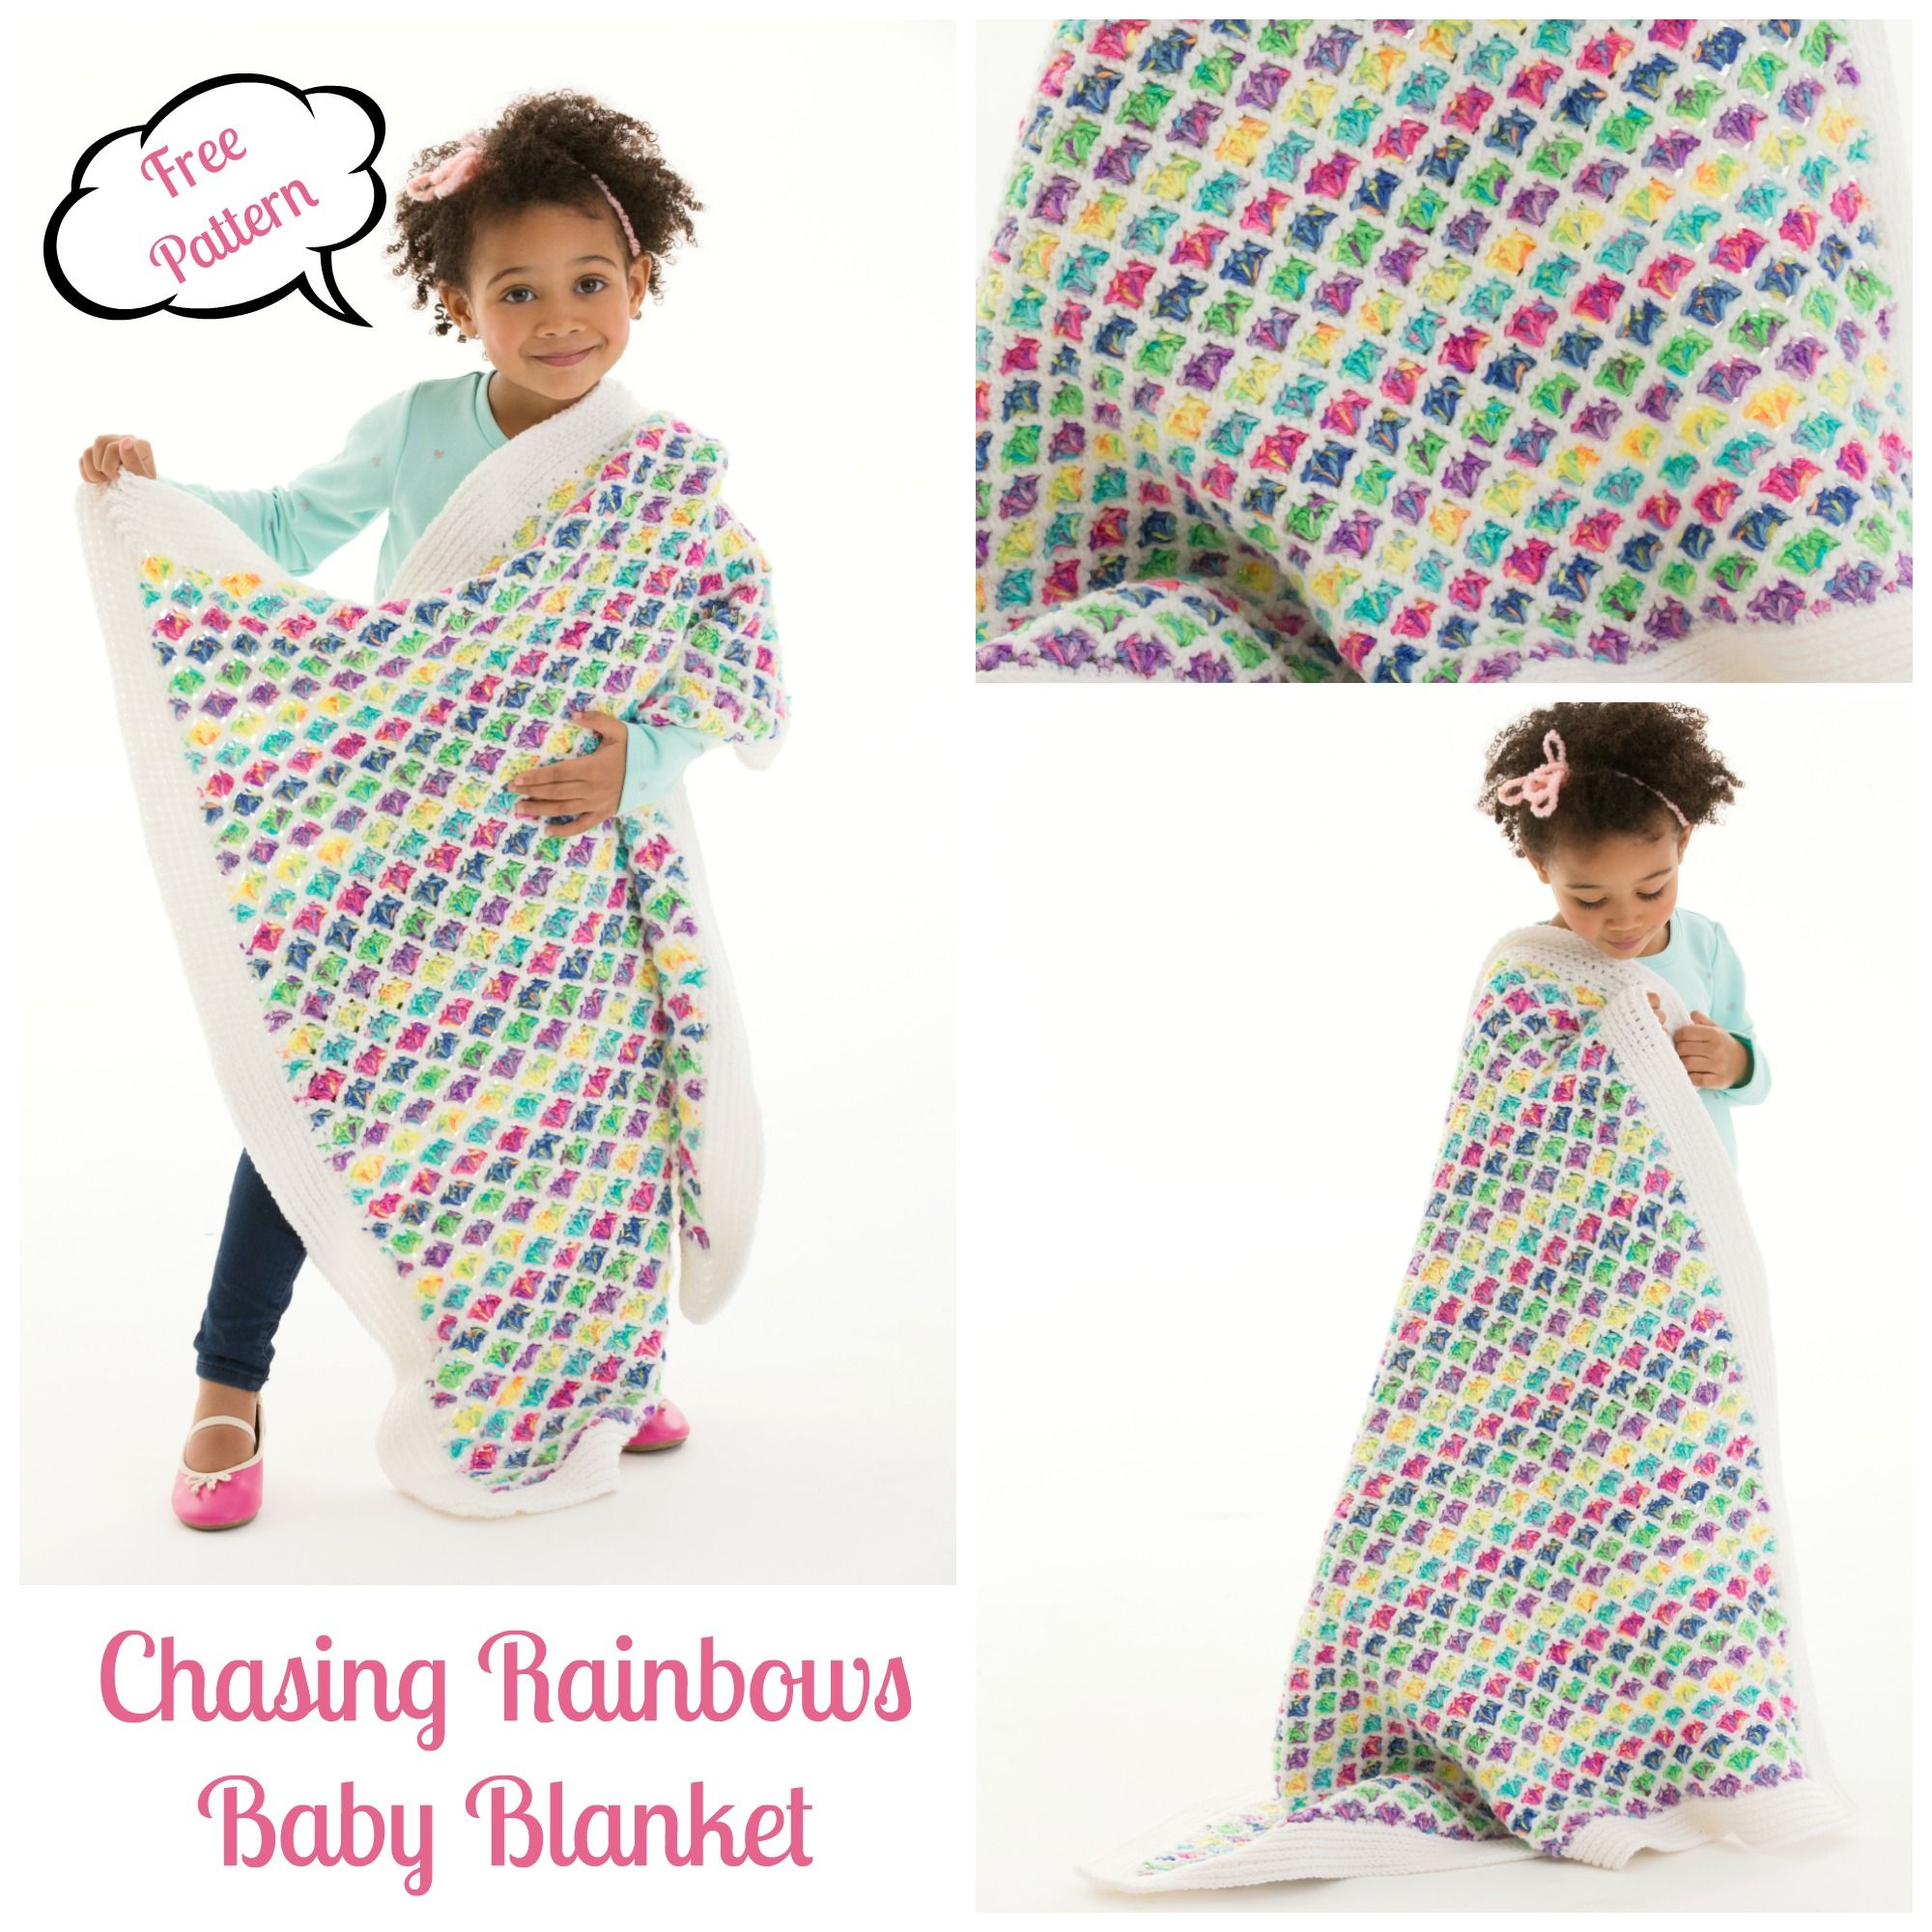 Chasing Rainbows Baby Blanket Pattern | Crochet and Knitting ...